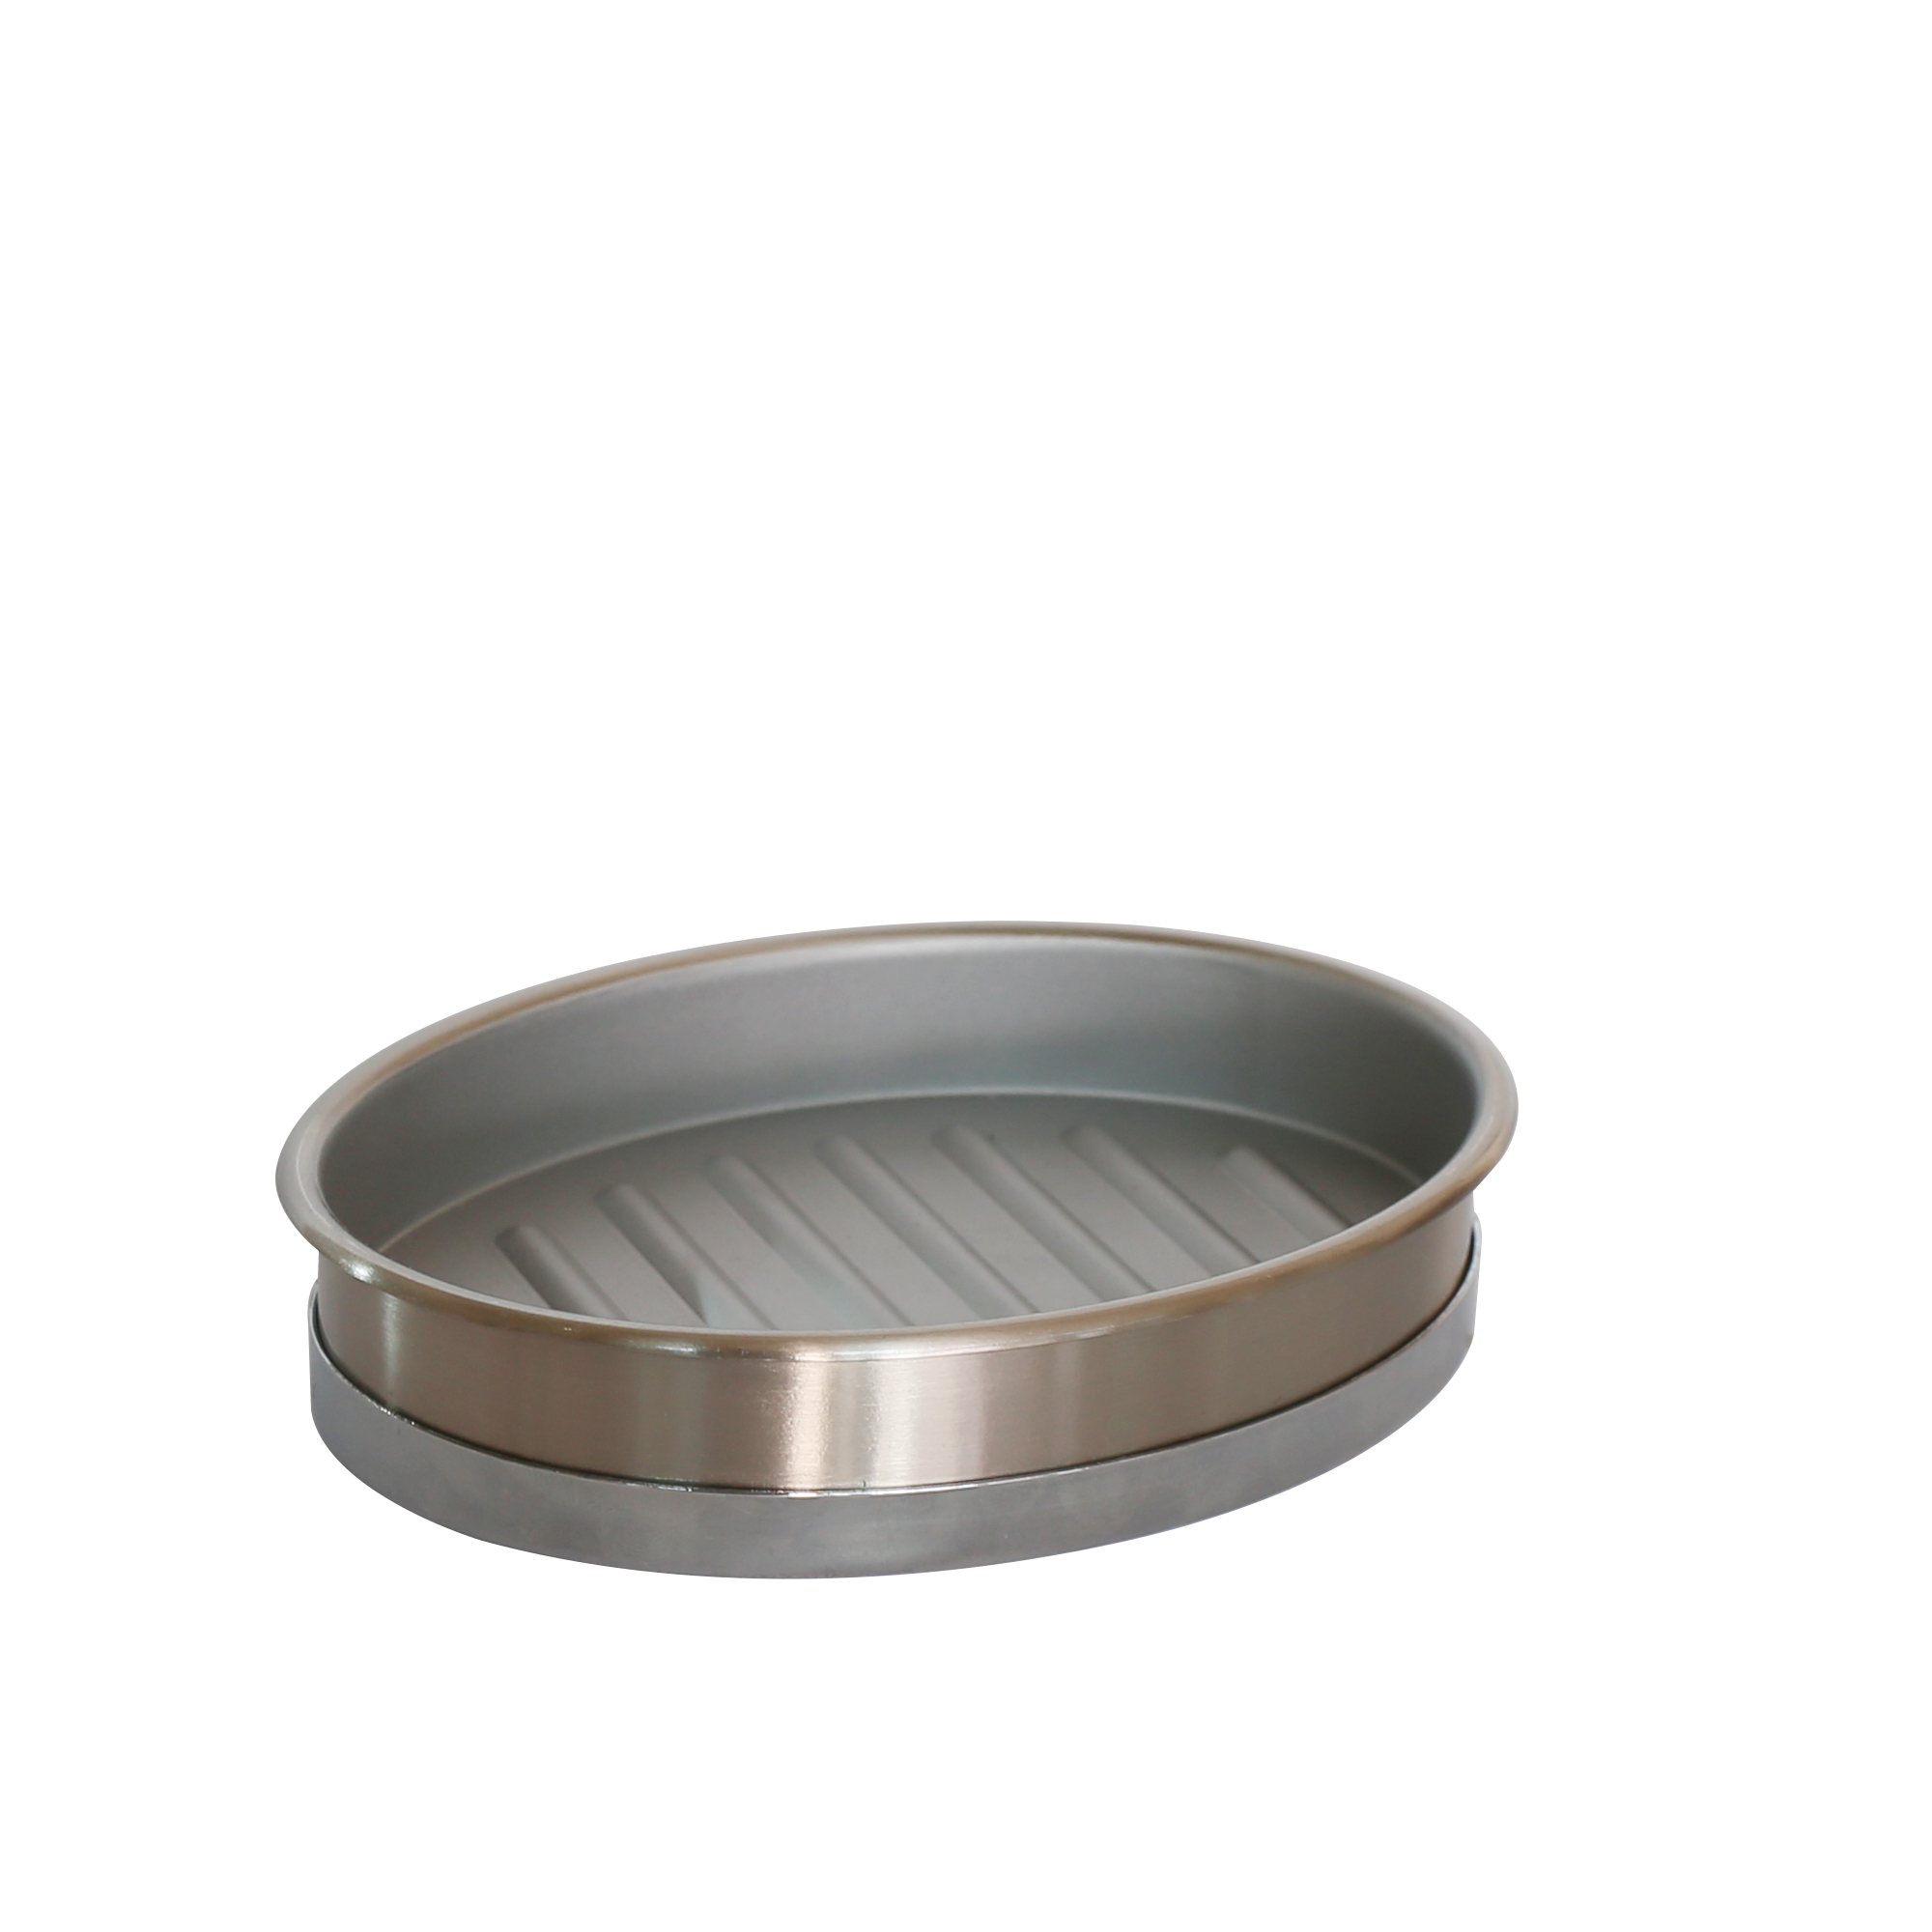 Better Homes & Gardens Two-Tone Metal Soap Dish, Silver